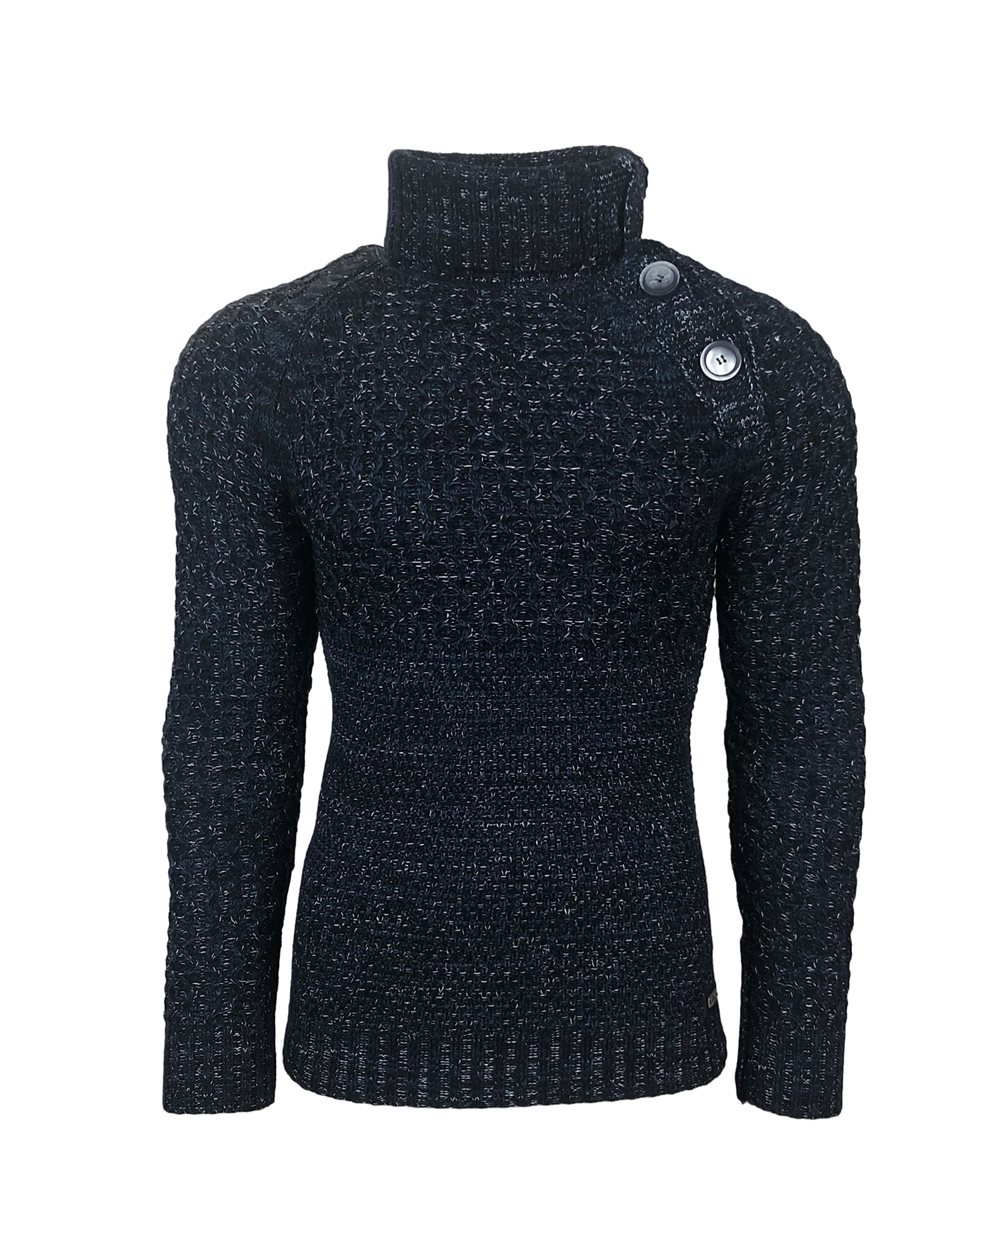 Rusty Neal - Pullover Homme Col Montant Boutonner a Pull Hiver Chiner Tricot Grosse Maille Gros Bouton 13338